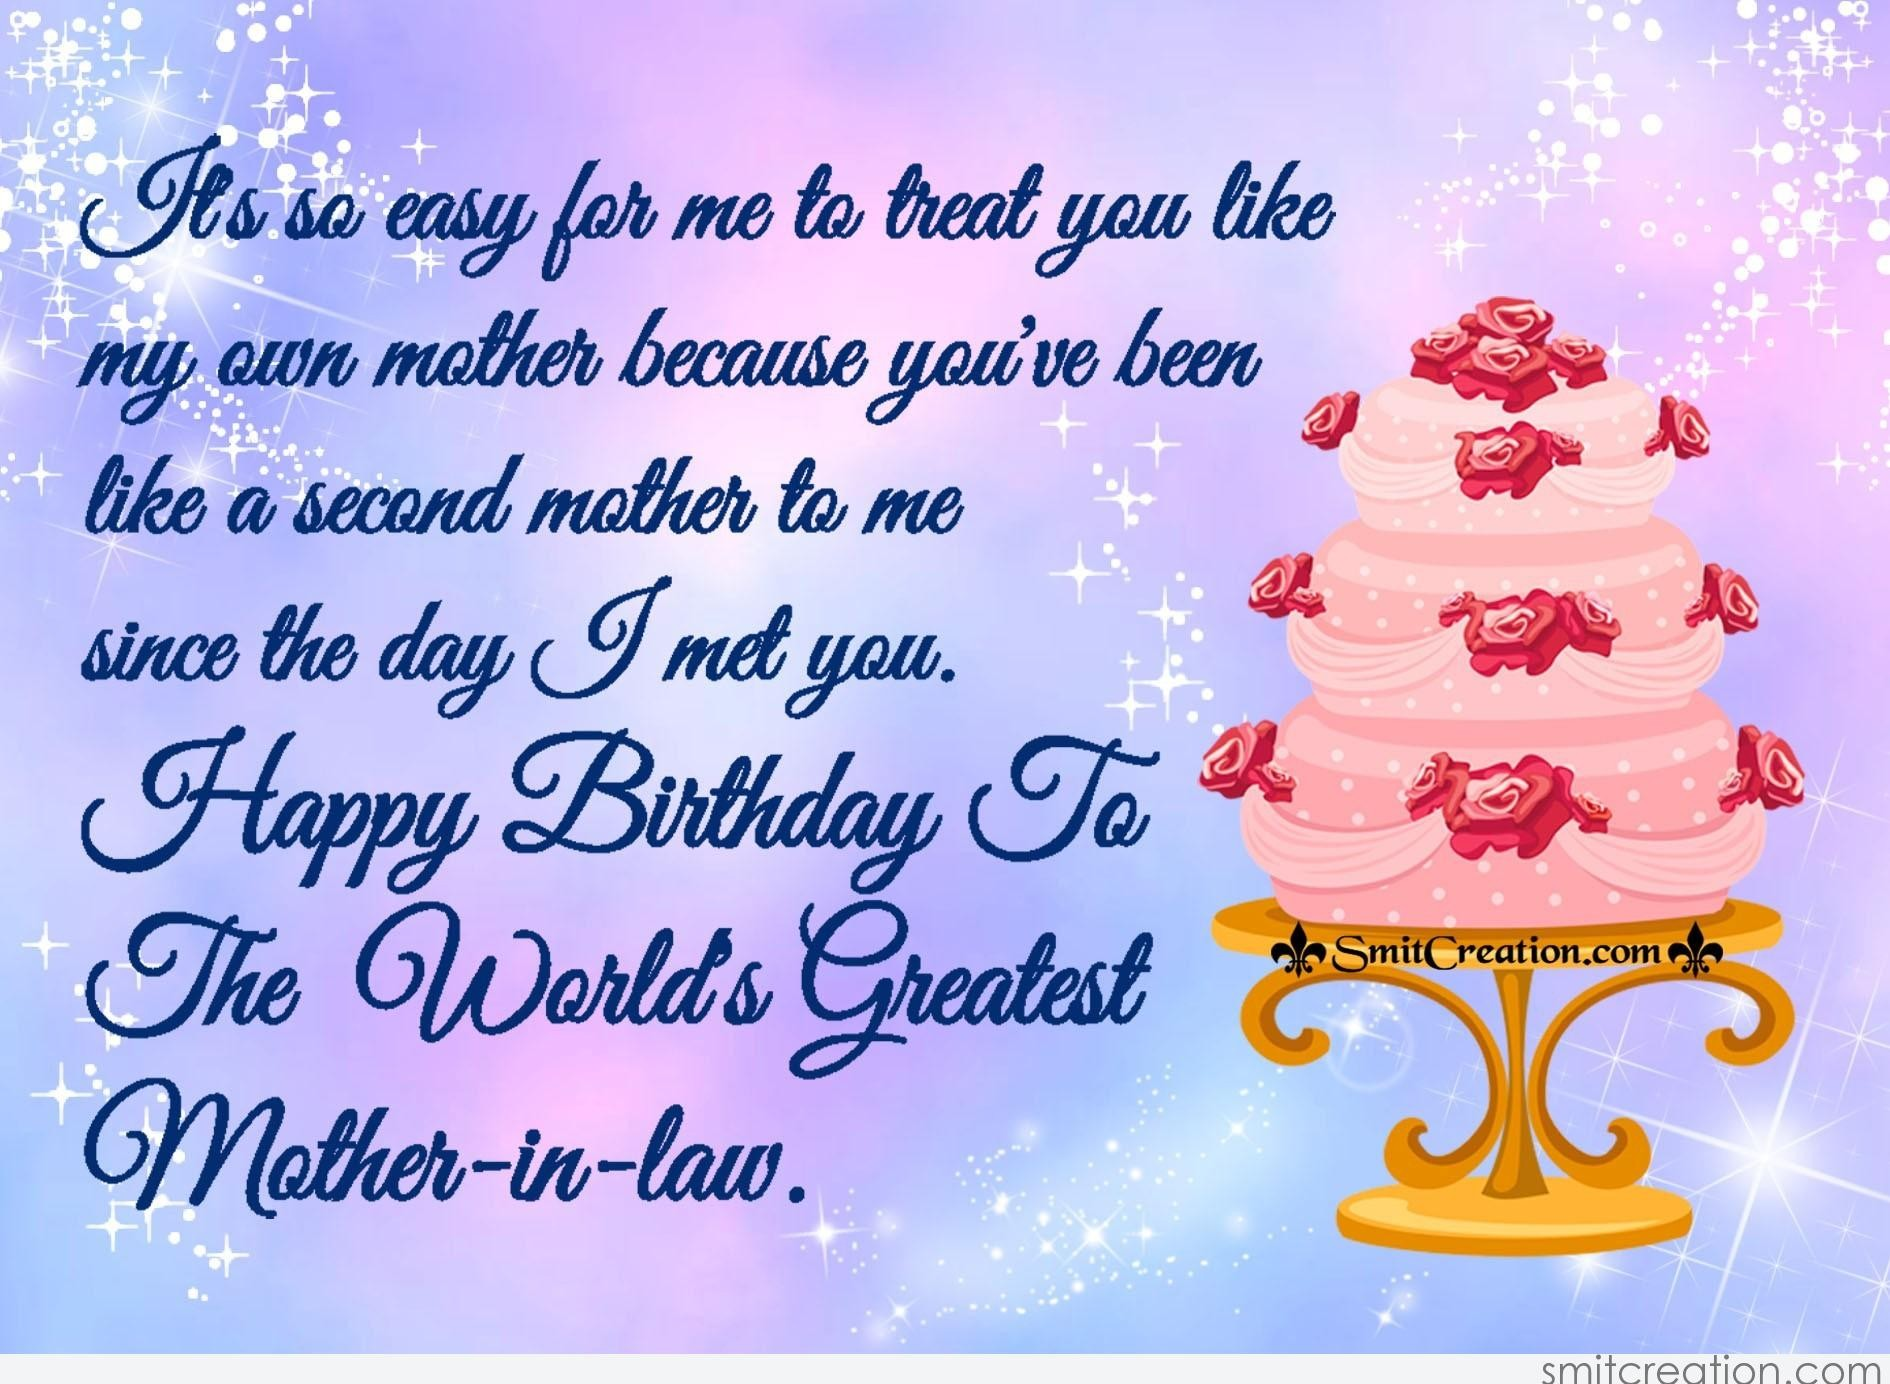 birthday wishes card in urdu ; birthday-wishes-to-mother-in-law-top-happy-birthday-to-the-worlds-greatest-mother-in-law-ideas-of-birthday-wishes-to-mother-in-law